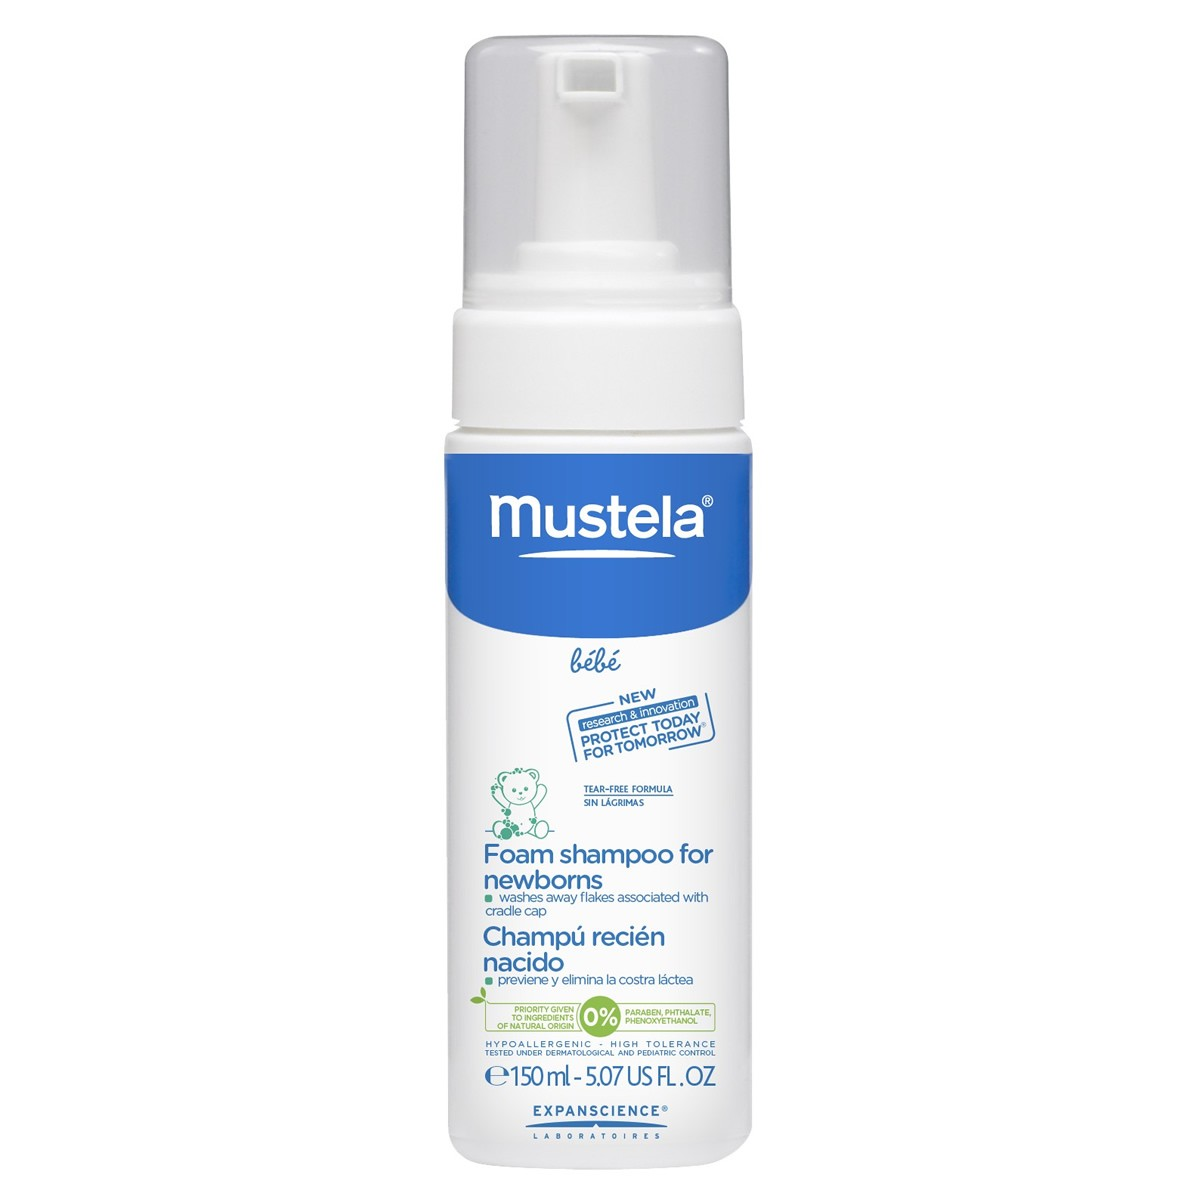 Mustela Bébé Foam Shampoo For Newborns